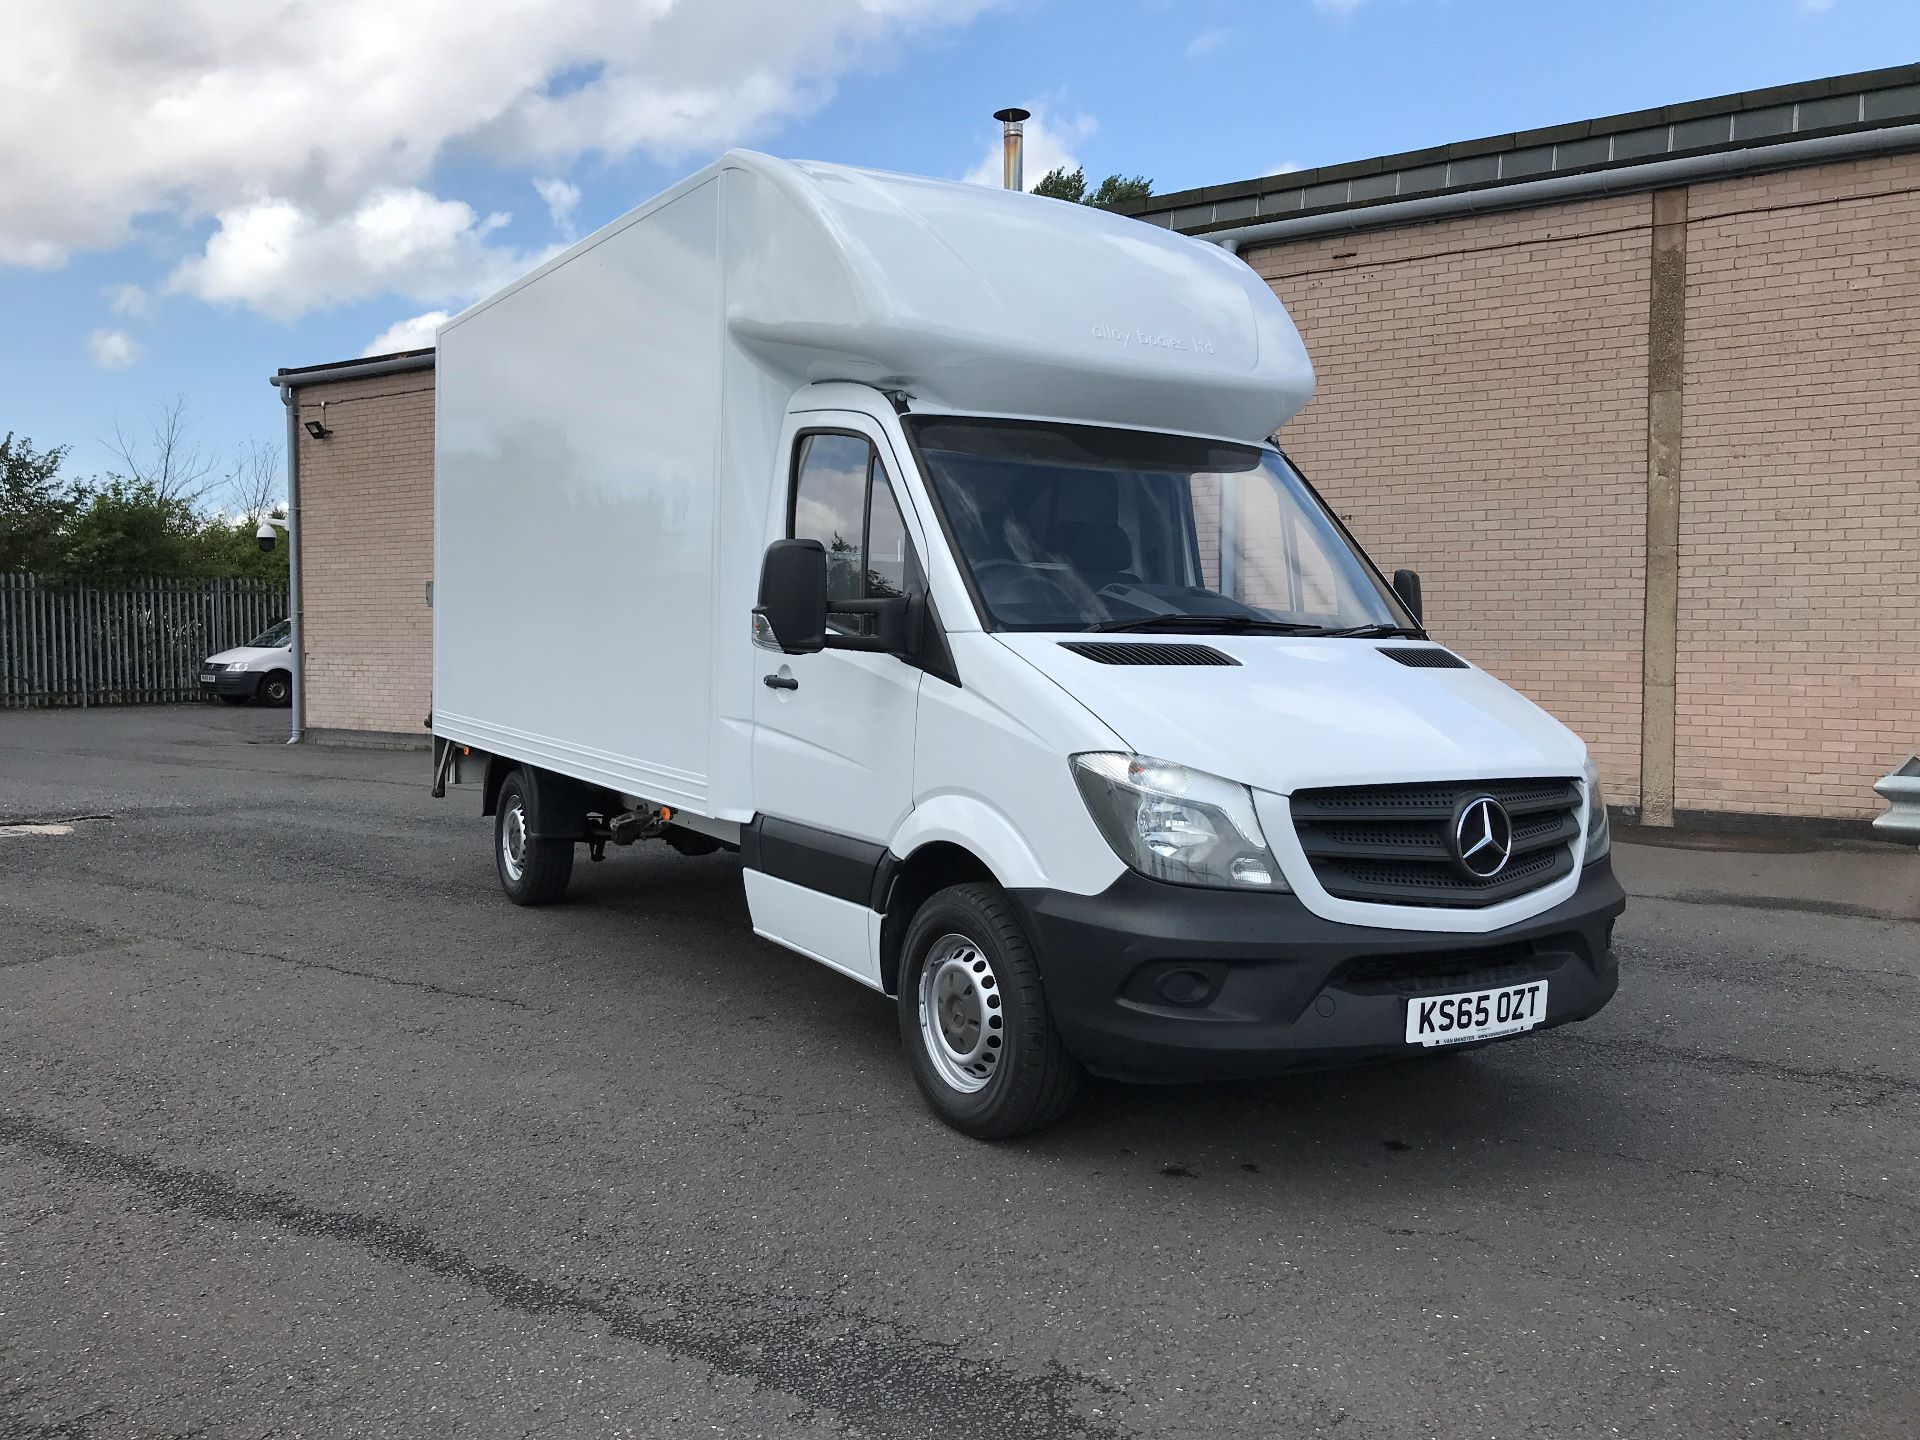 2016 Mercedes-Benz Sprinter 313CDI 13FT LUTON 130PS TAIL LIFT (KS65OZT)